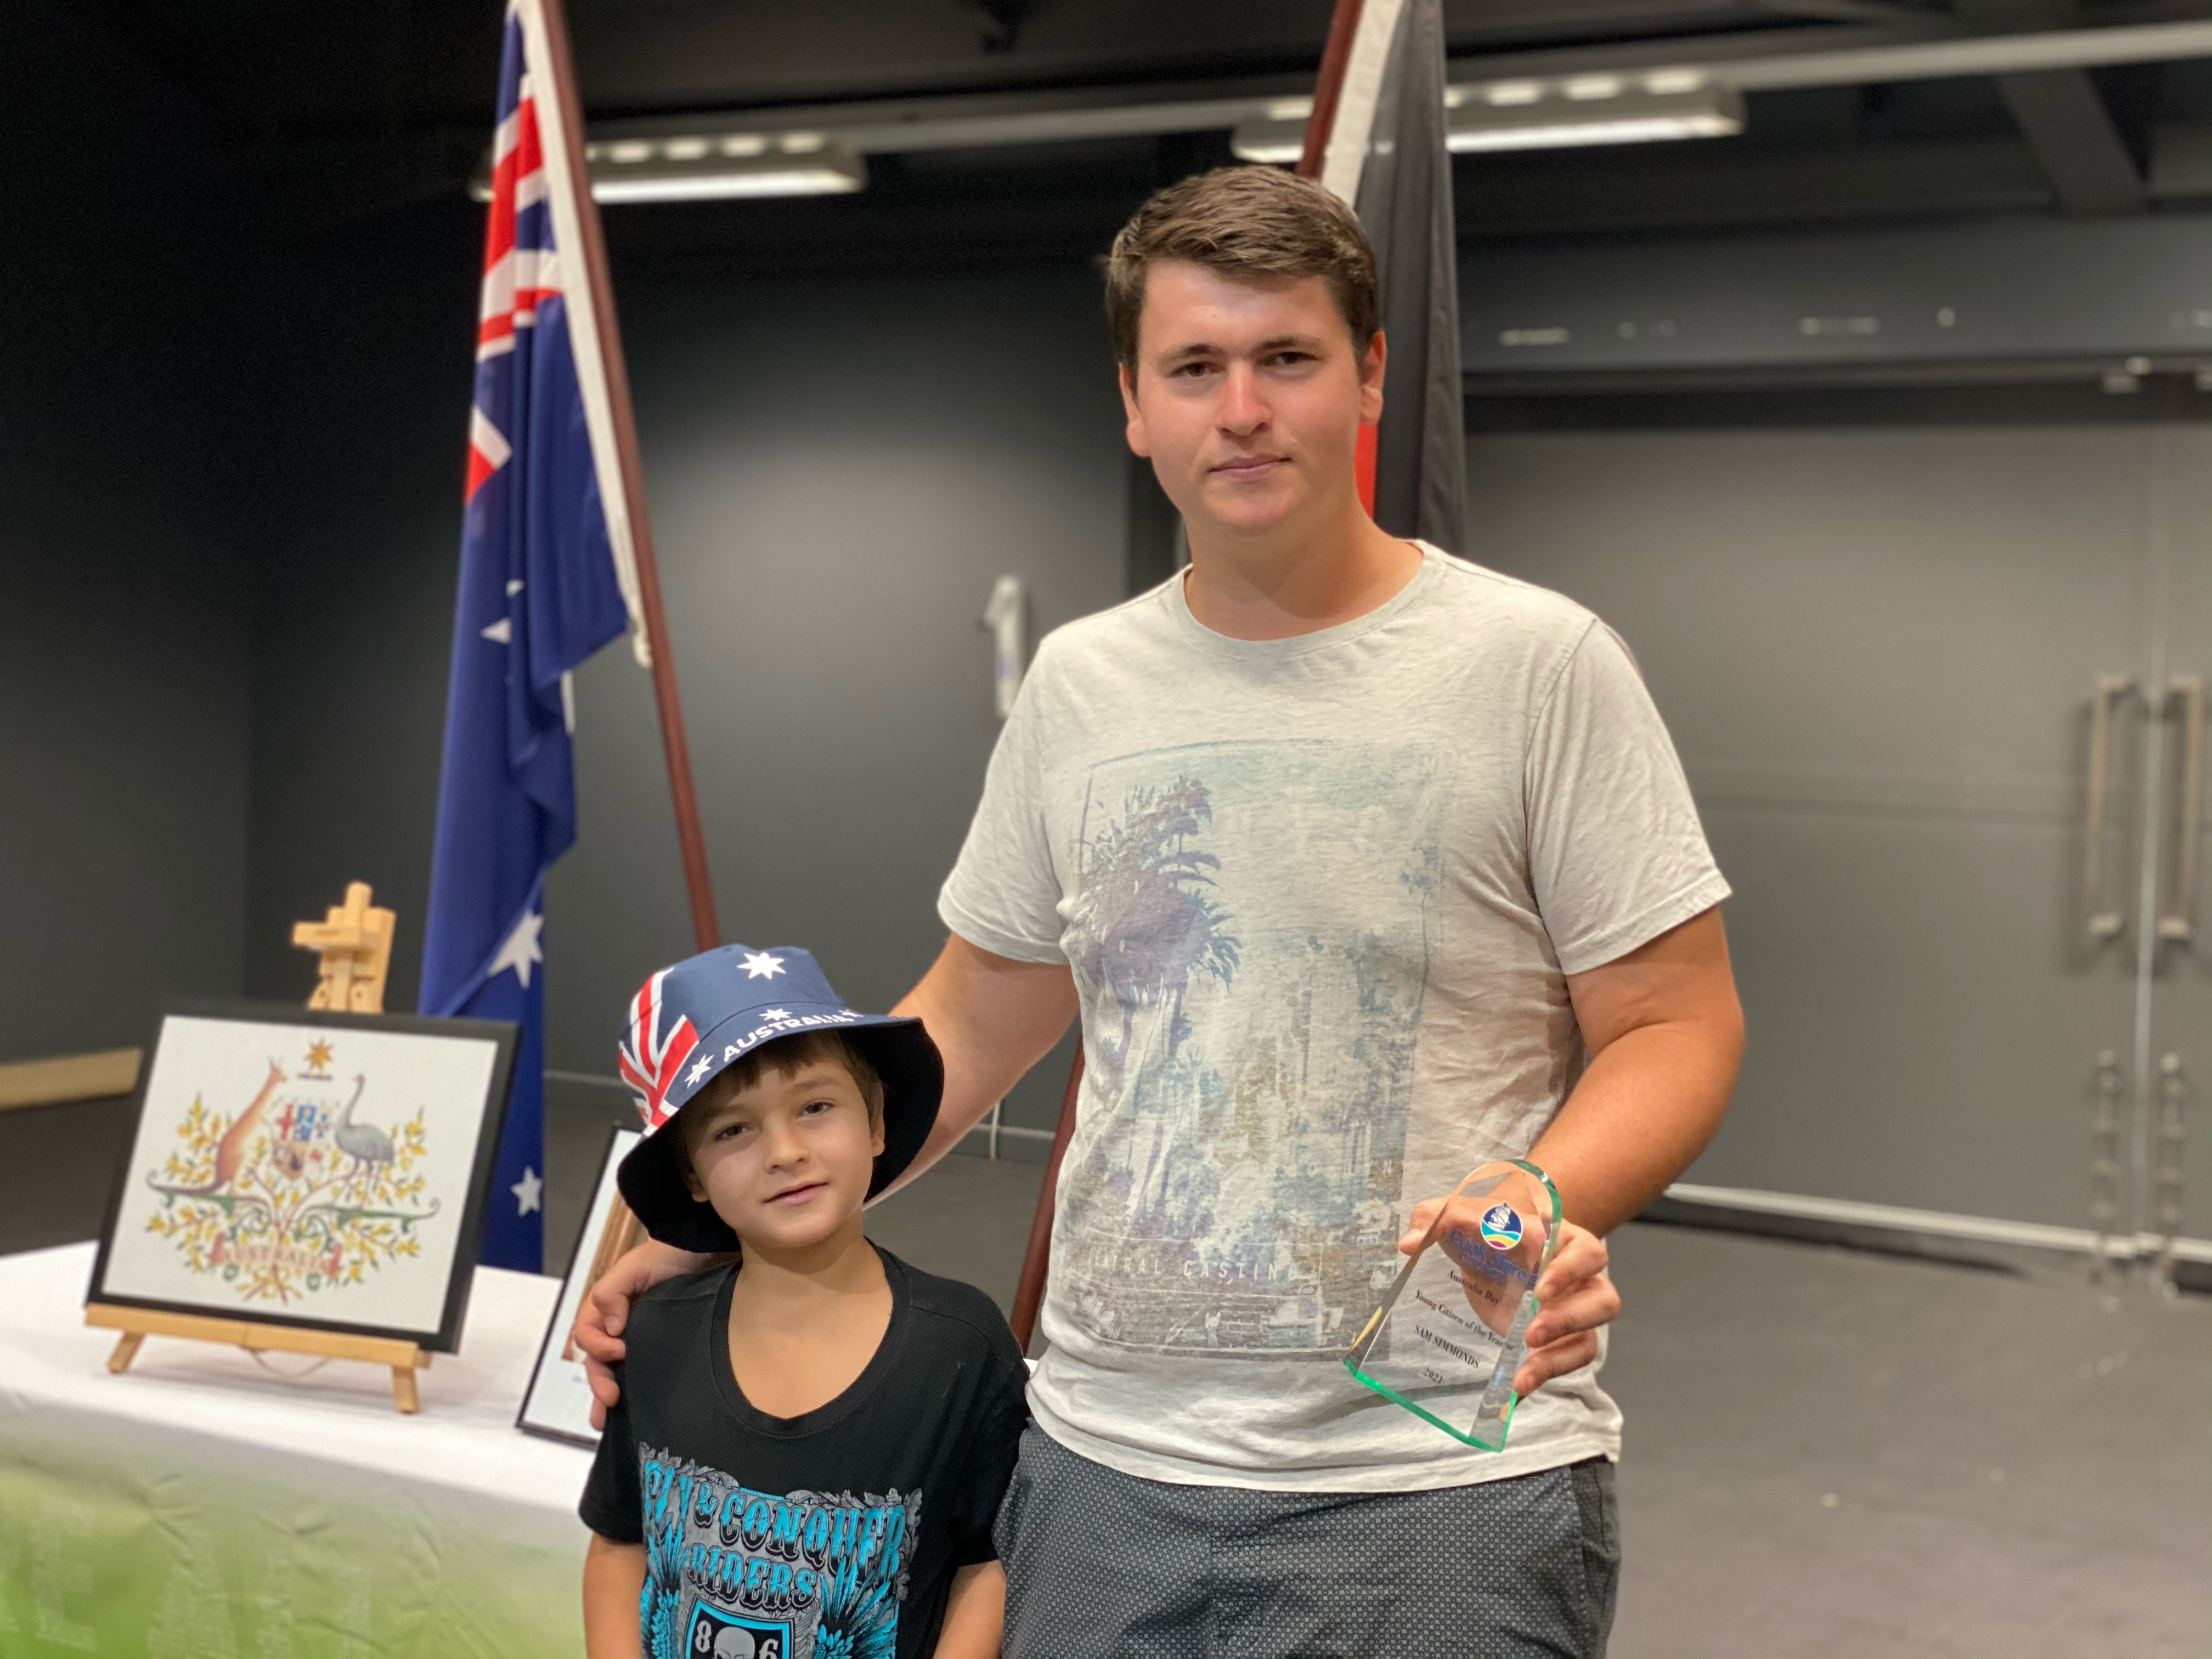 Cook Shire Young Citizen of Year 2021 Sam Simmonds